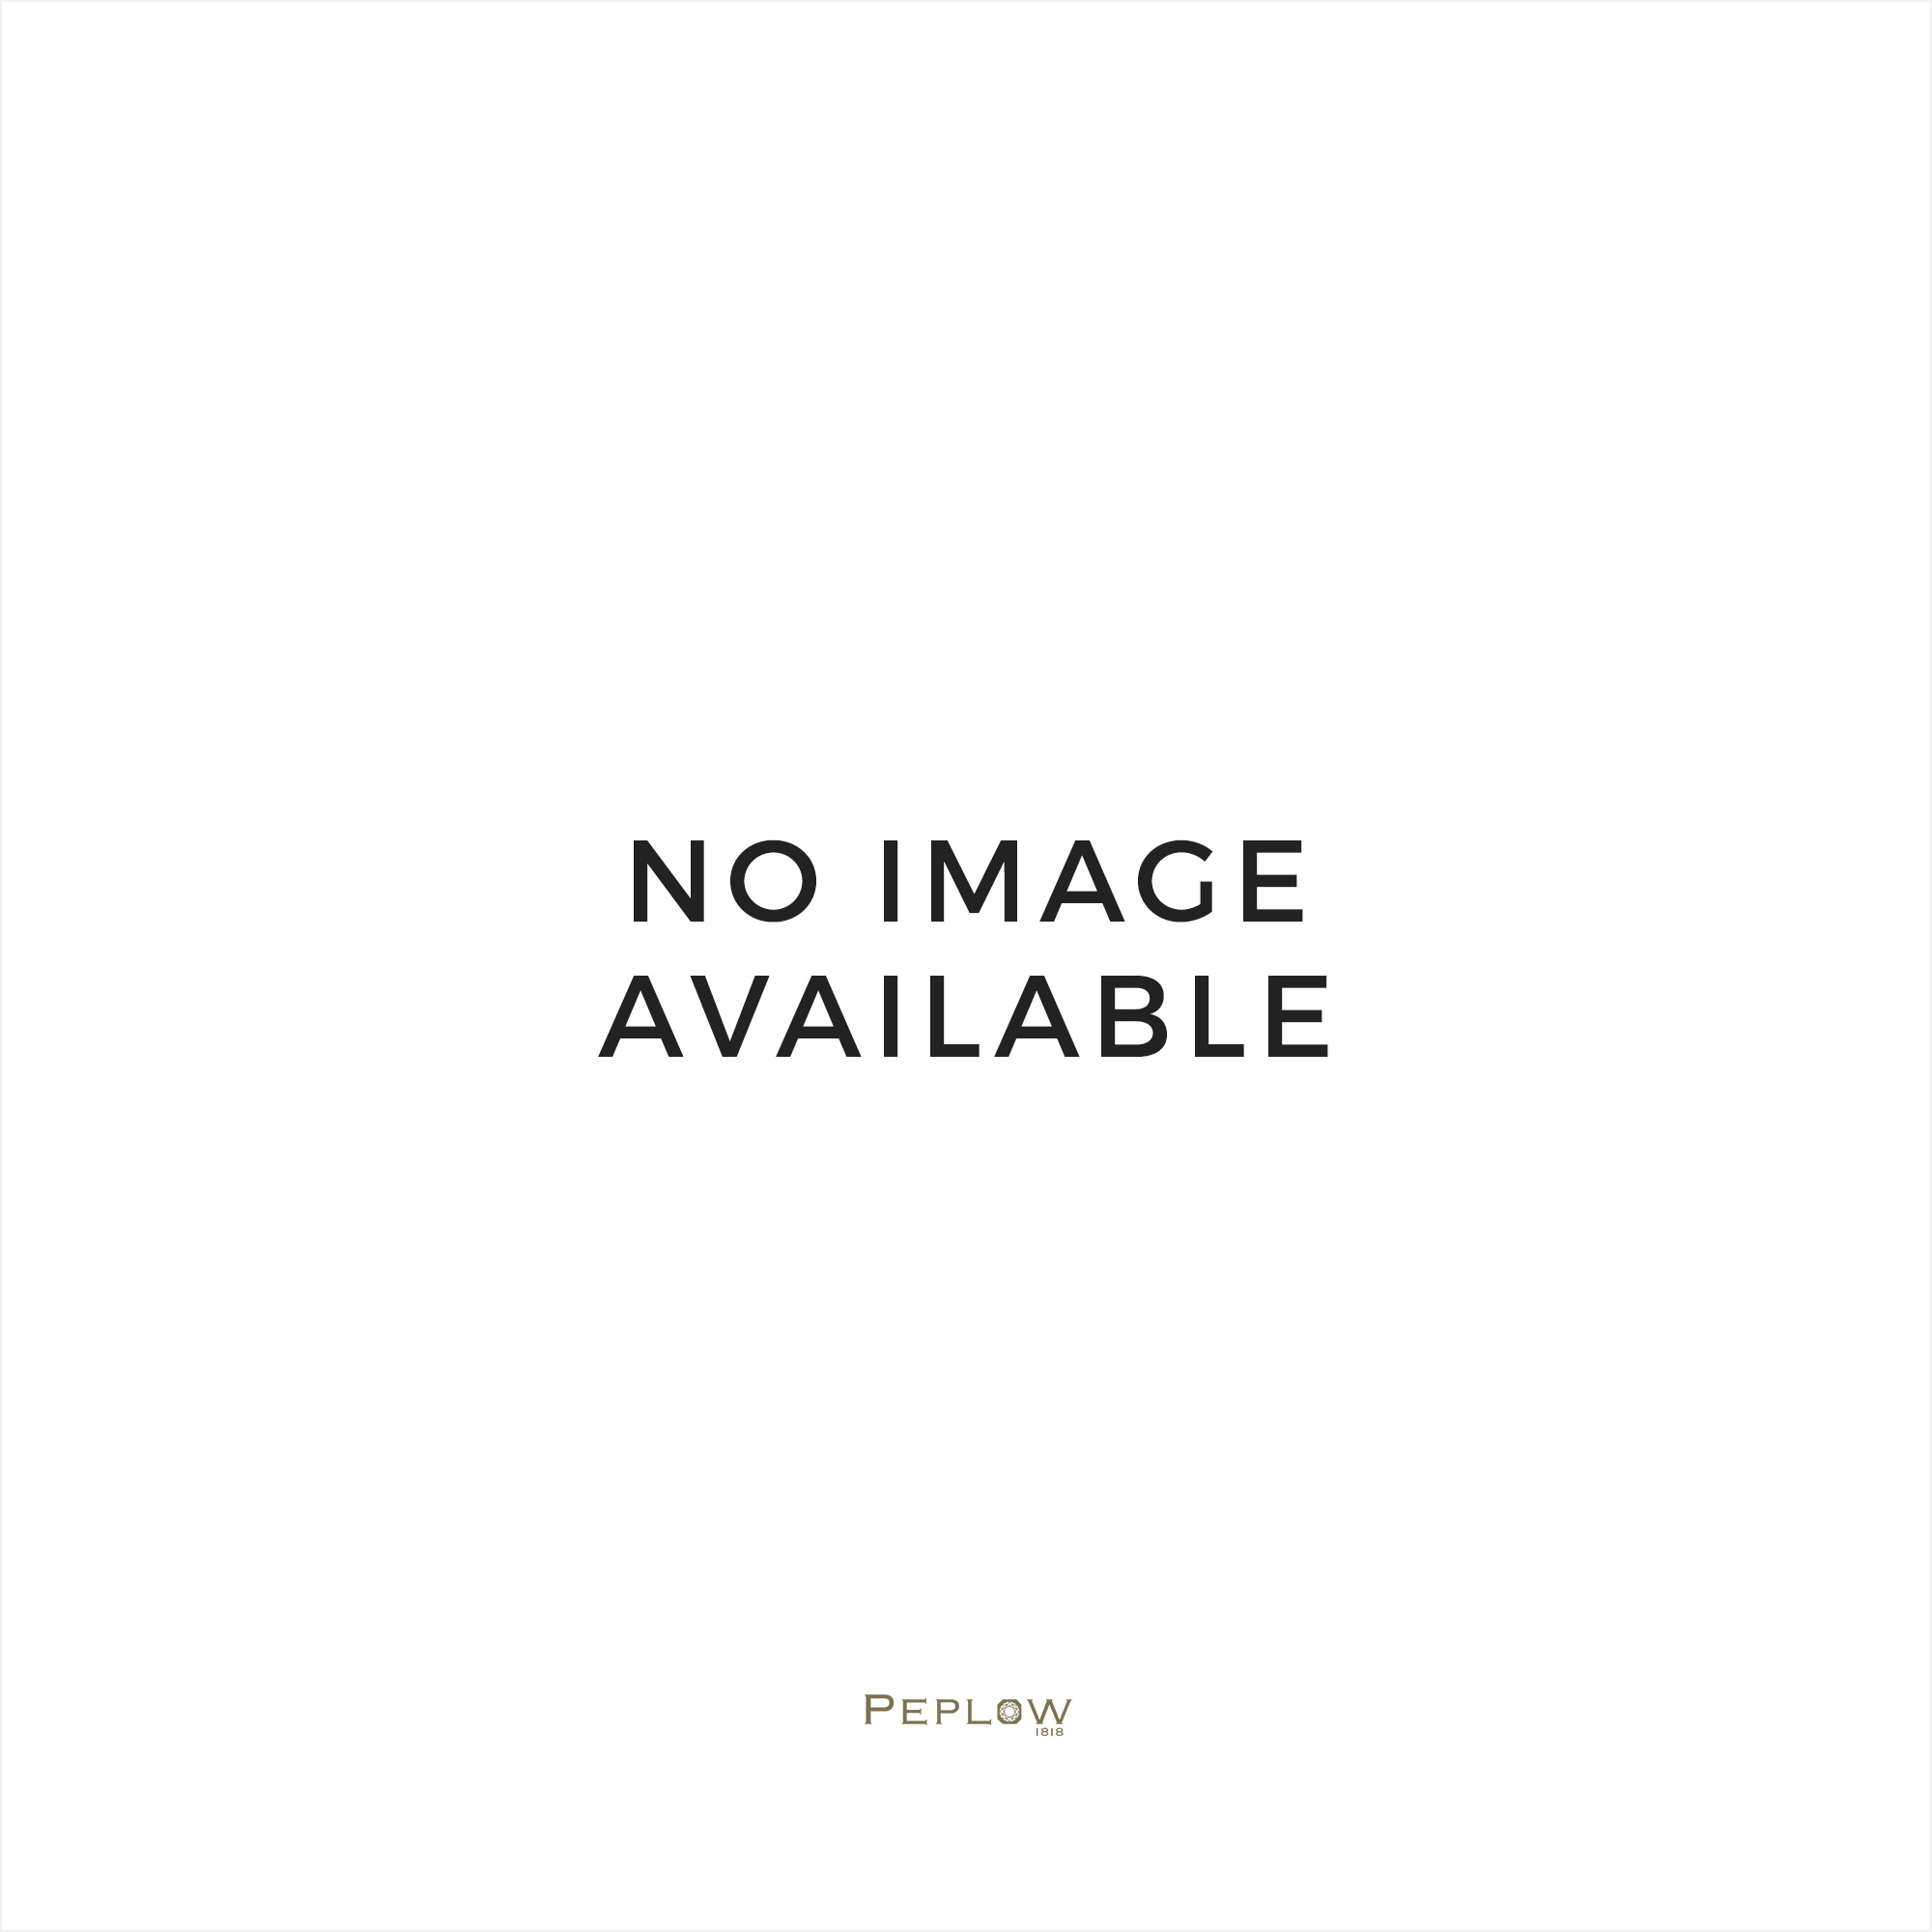 Montblanc le Grand black 146 fountain pen, ref 13661